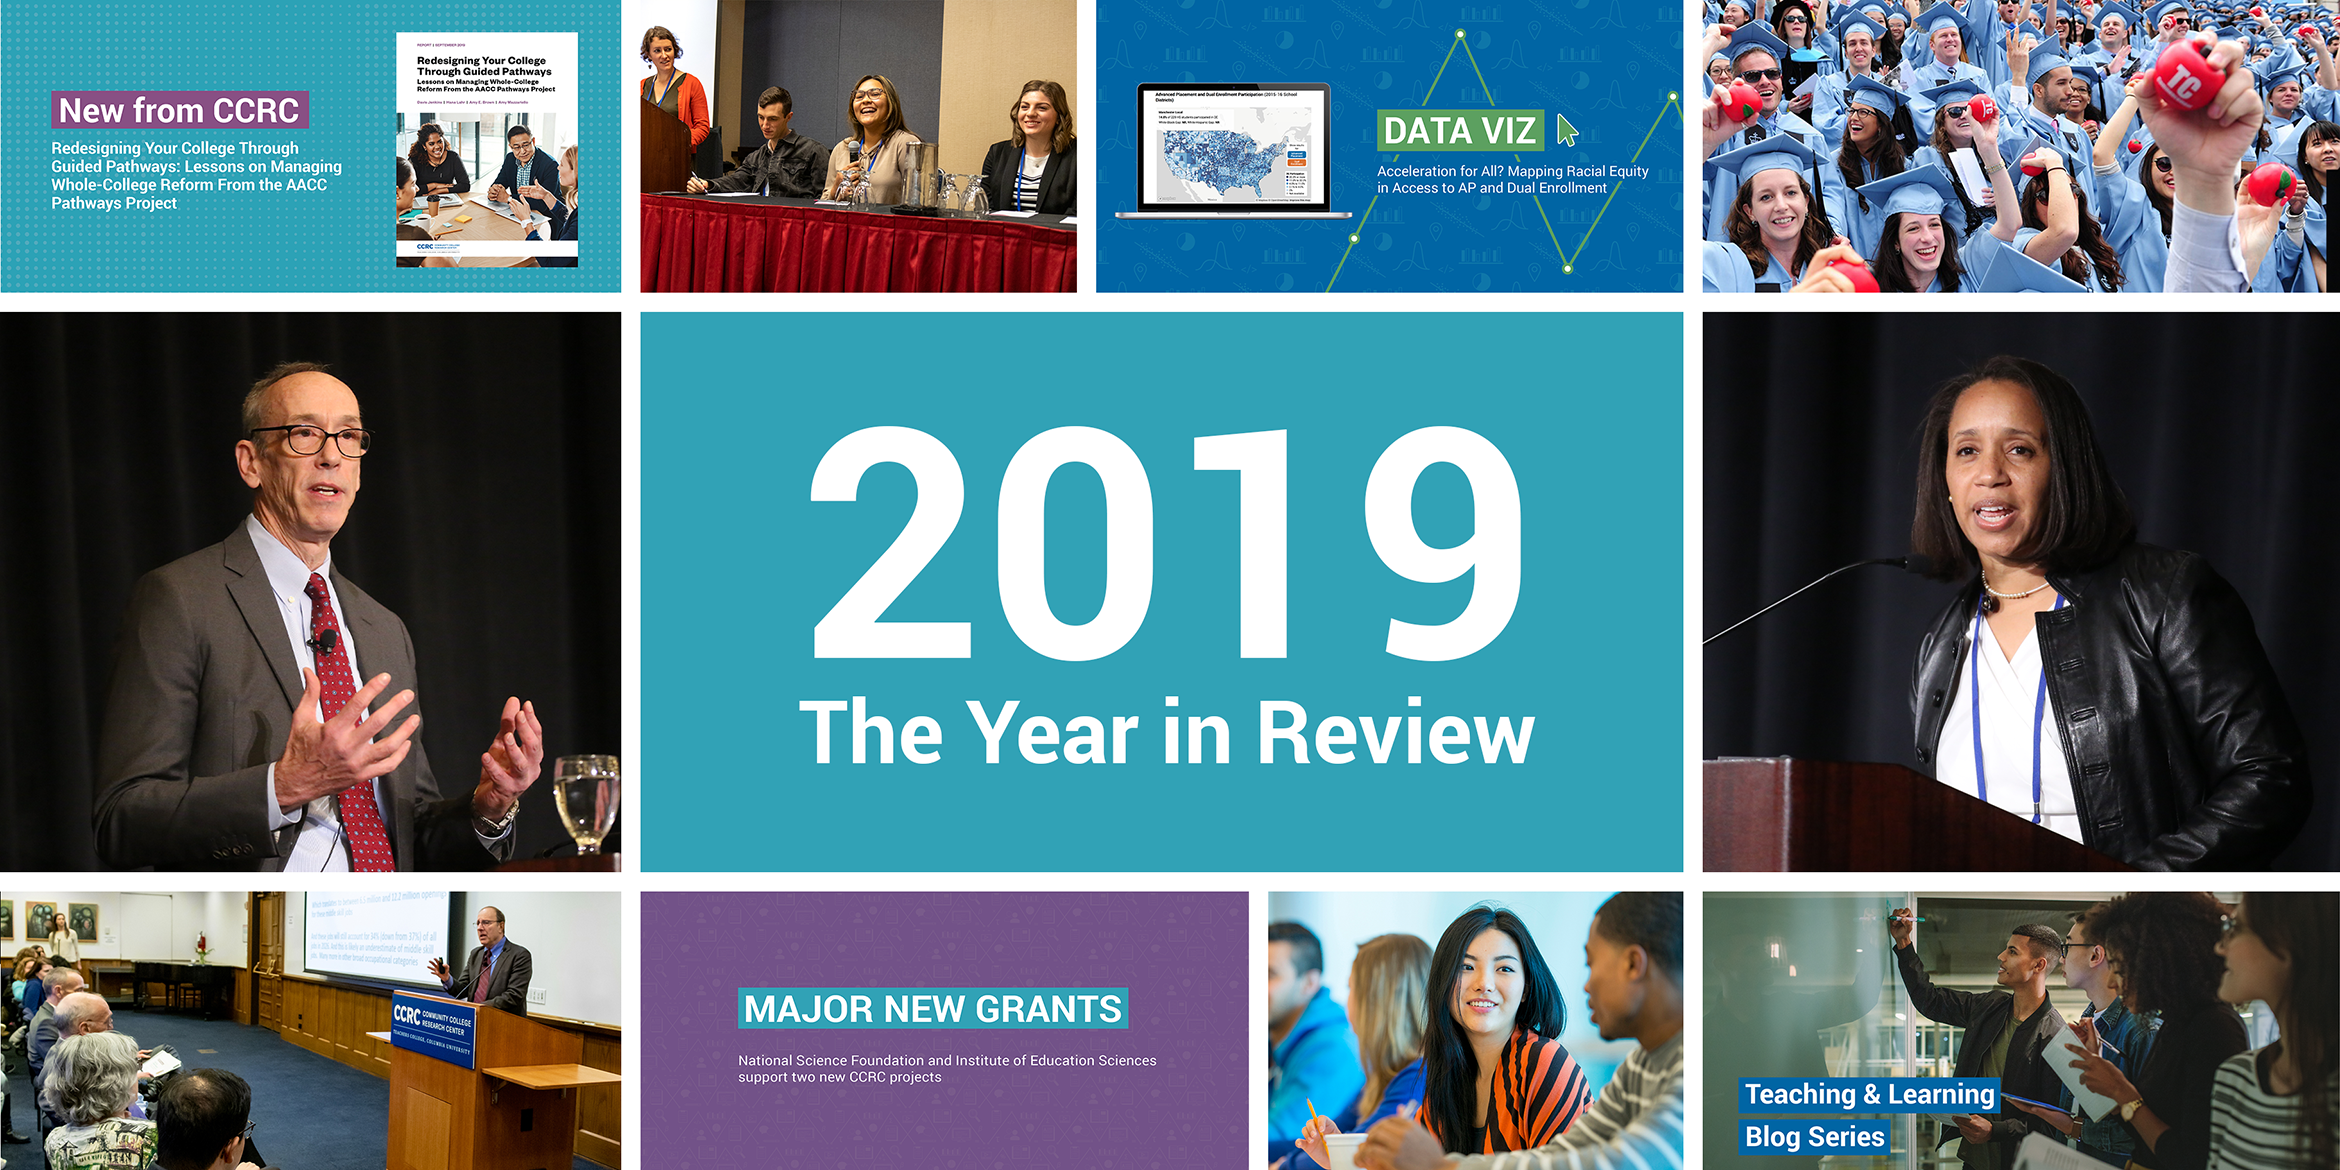 The Year in Review: A Look Back at CCRC in 2019